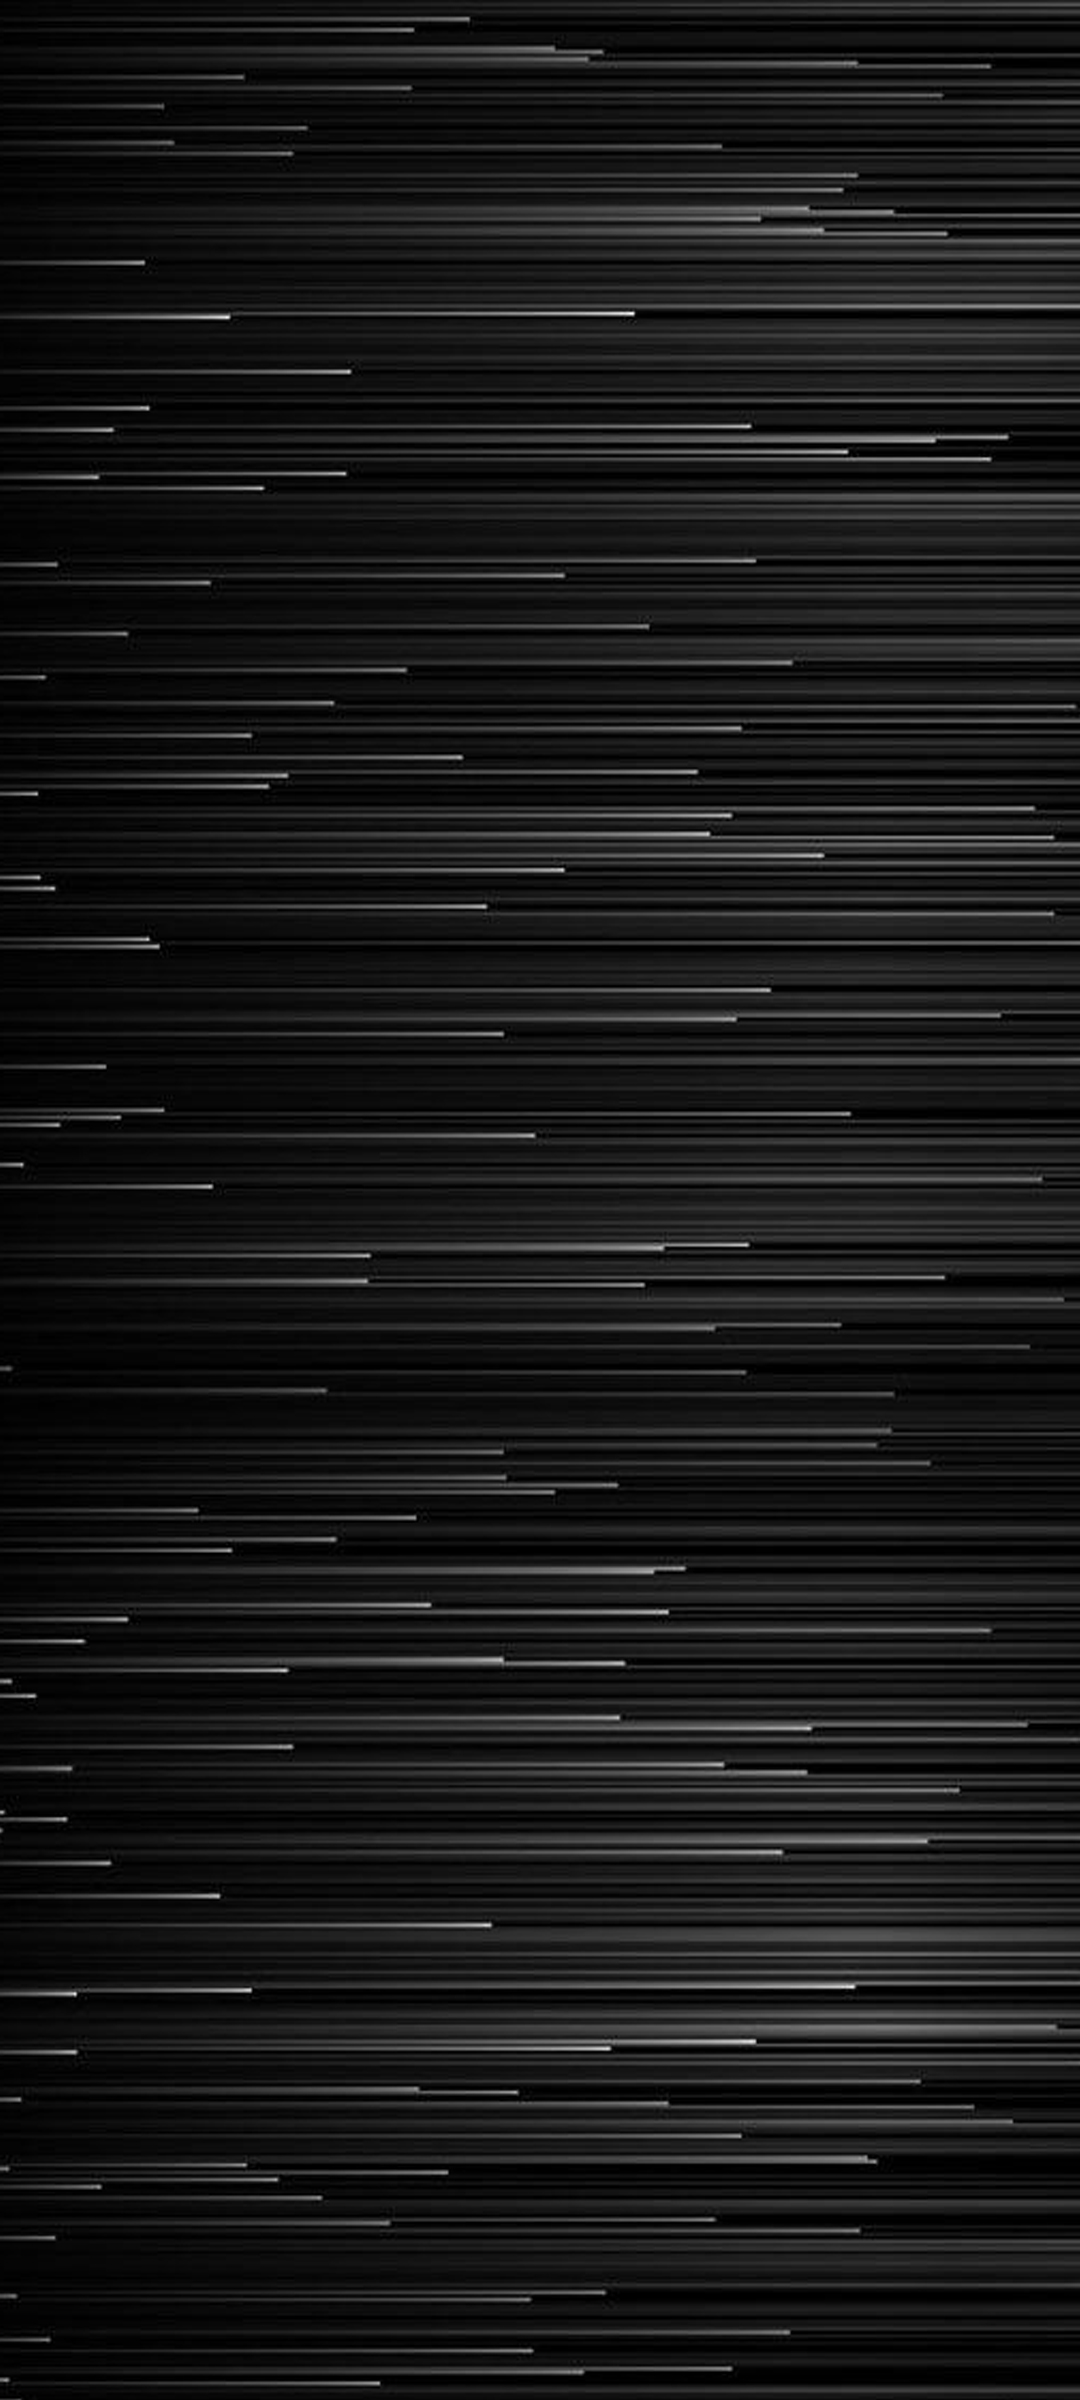 Dark Background With 3d Lights For Samsung A51 Wallpaper 02 Of 10 Abstract Horizontal White Lights Hd Wallpapers Wallpapers Download High Resolution Wallpapers